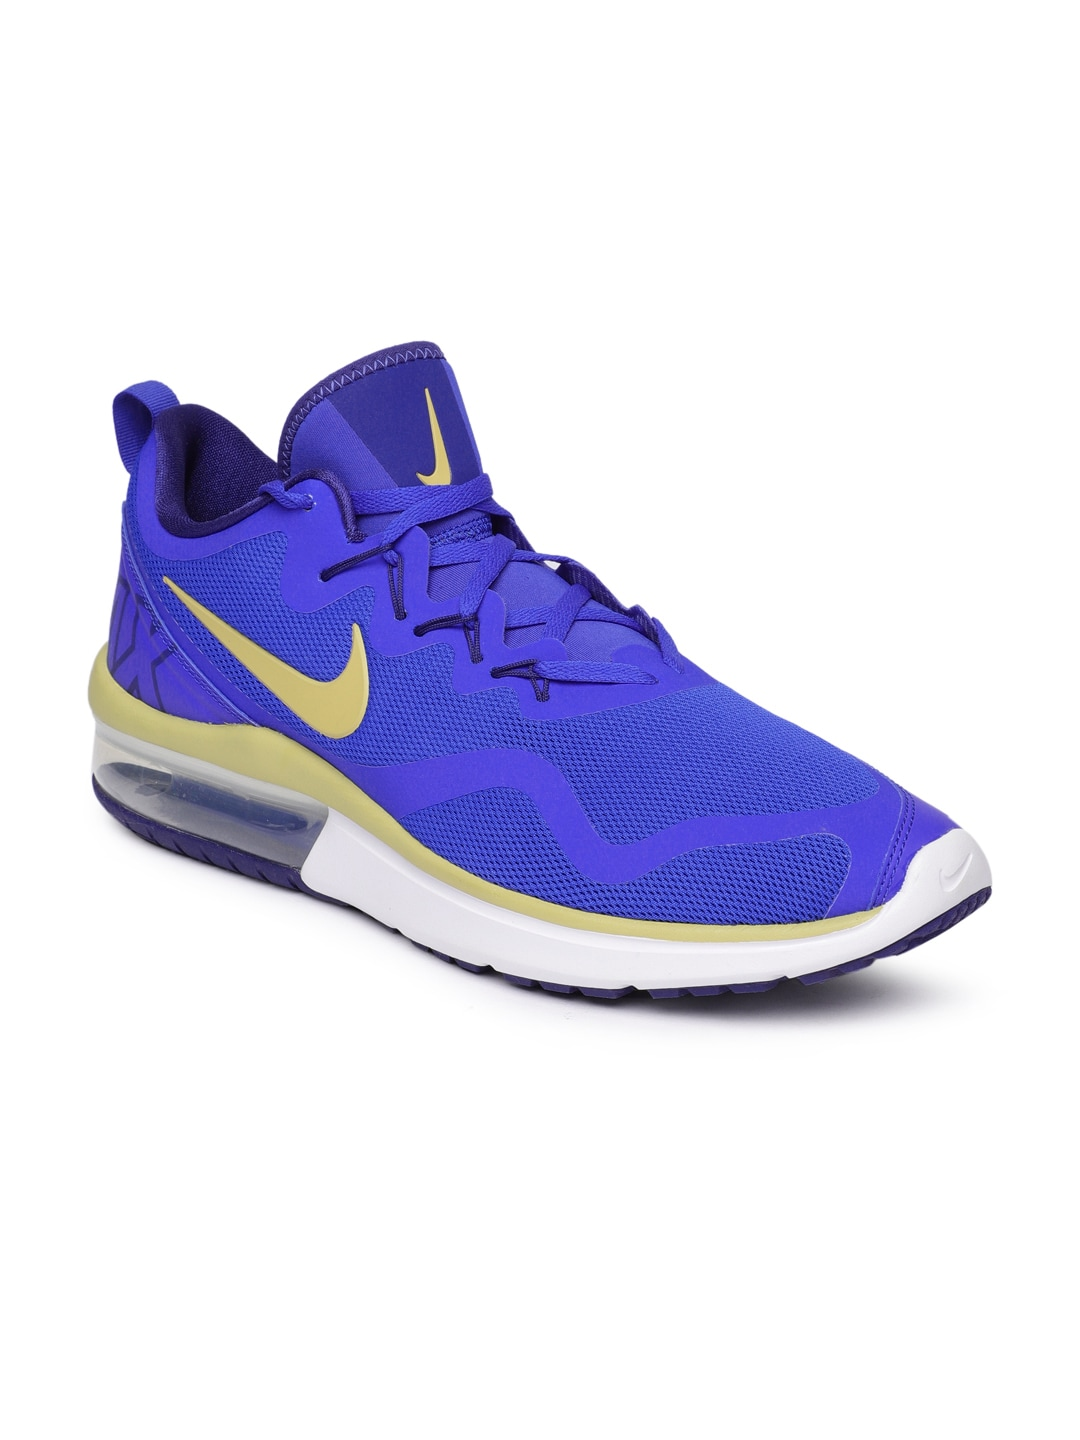 low priced f05cb fda3c Nike Shoes for Men - Buy Men s Nike Shoes Online   Myntra